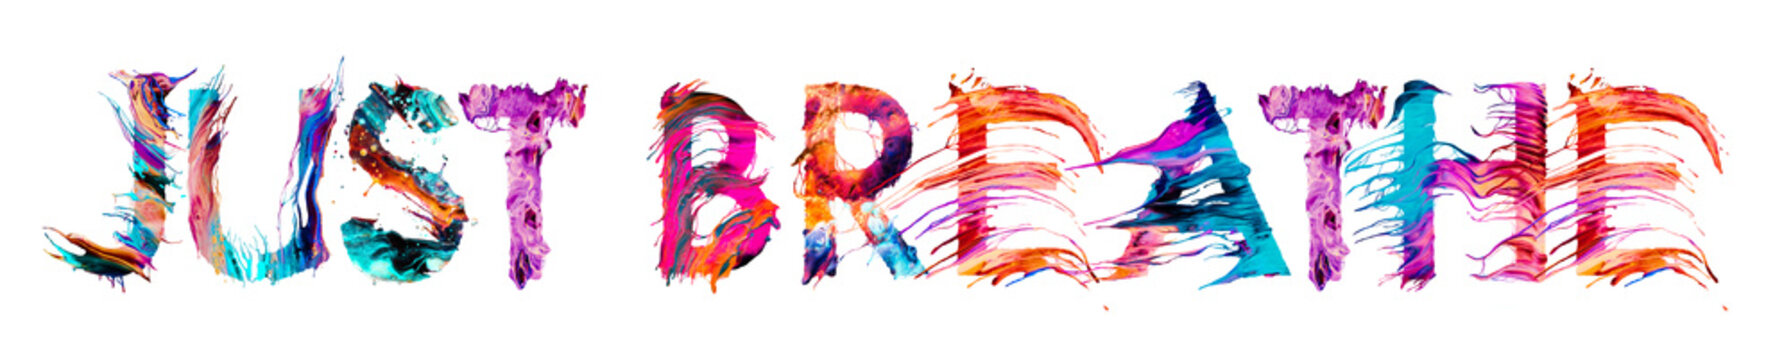 JUST BREATHE brush typography banner with colorful letters illustration concept on white background